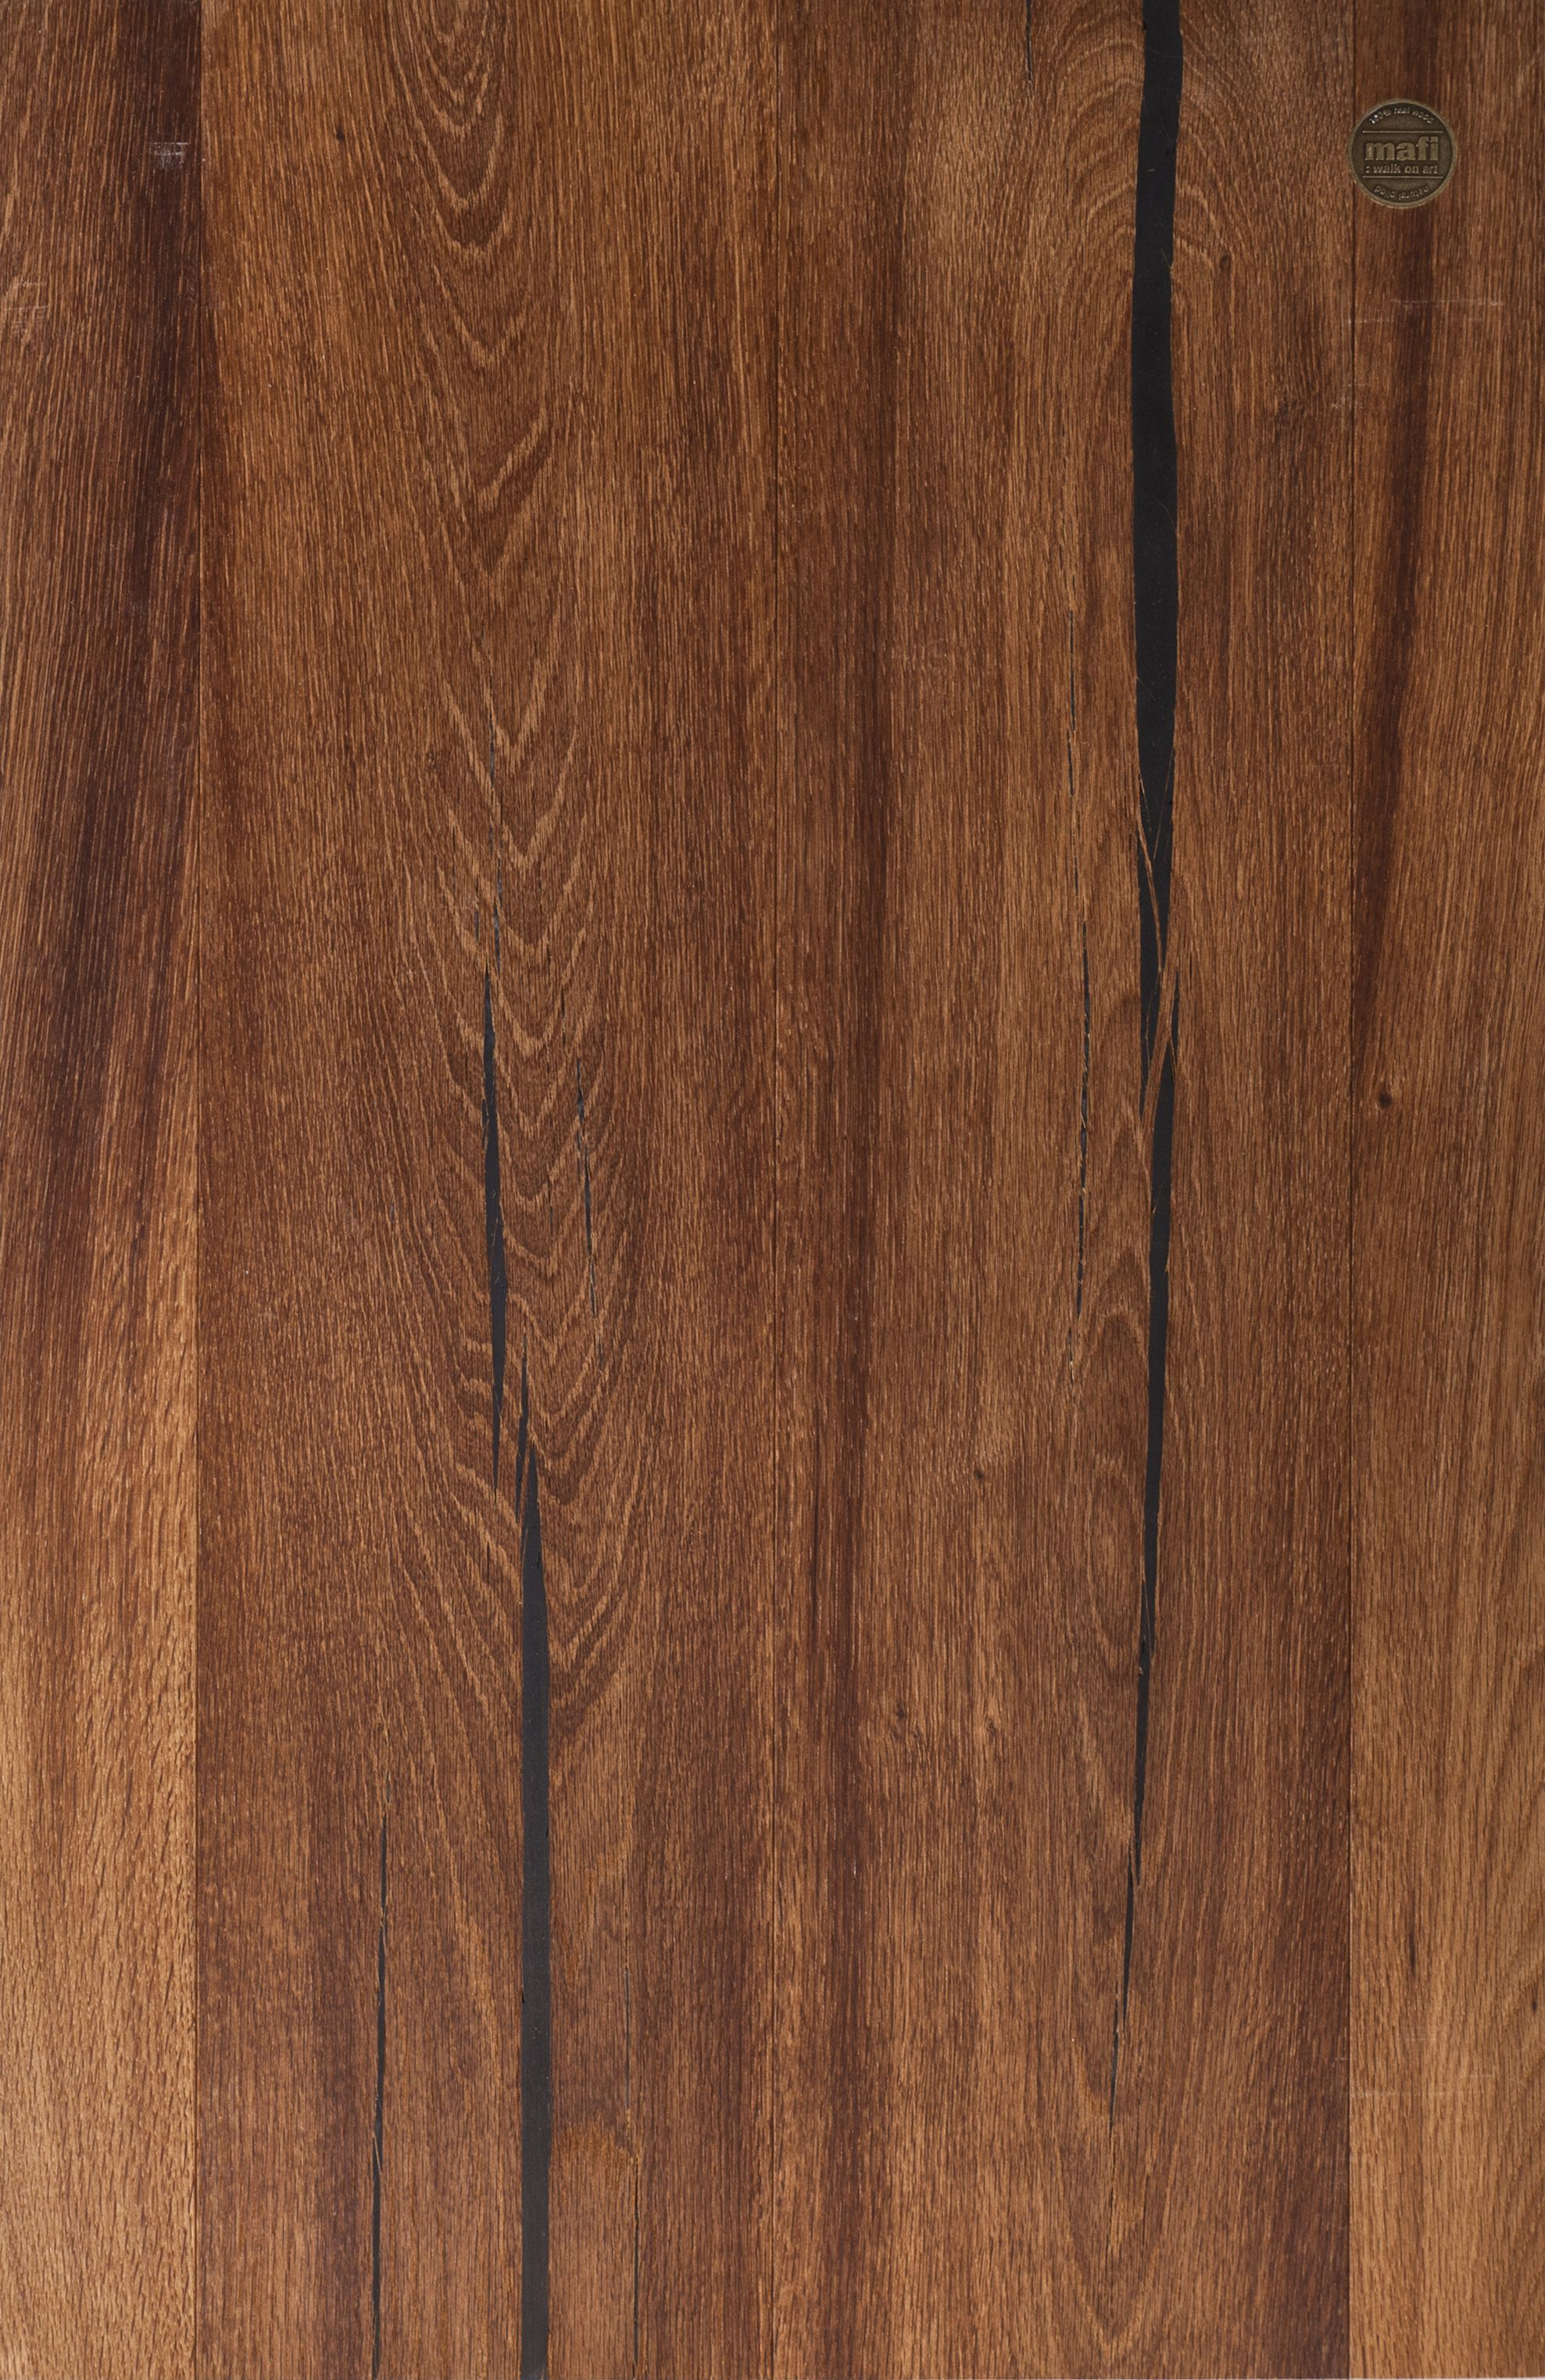 Mafi Custom Textures And Finishes Engineered Natural Oil